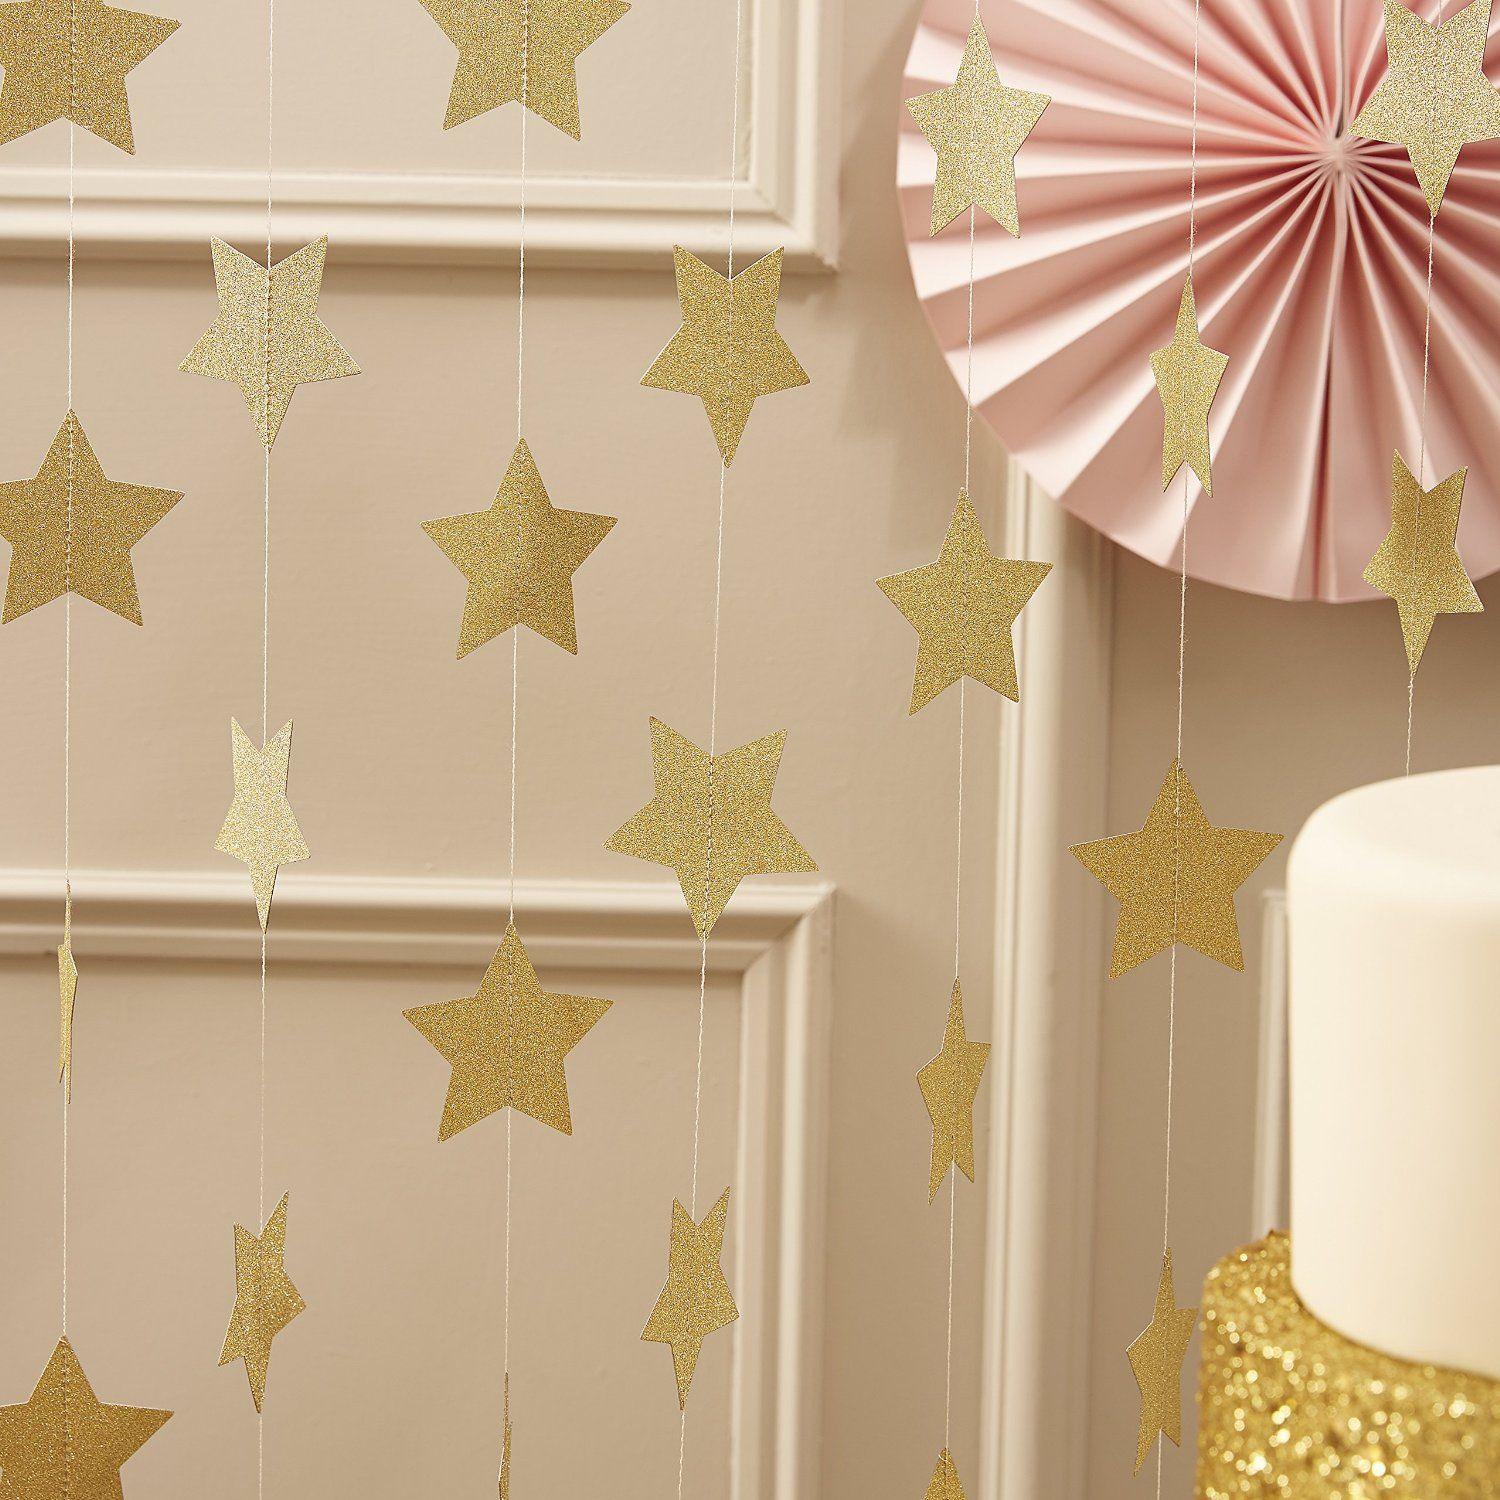 Decorative Stars For Parties Amazoncom Ginger Ray Pastel Perfection Sparkling Star Garland